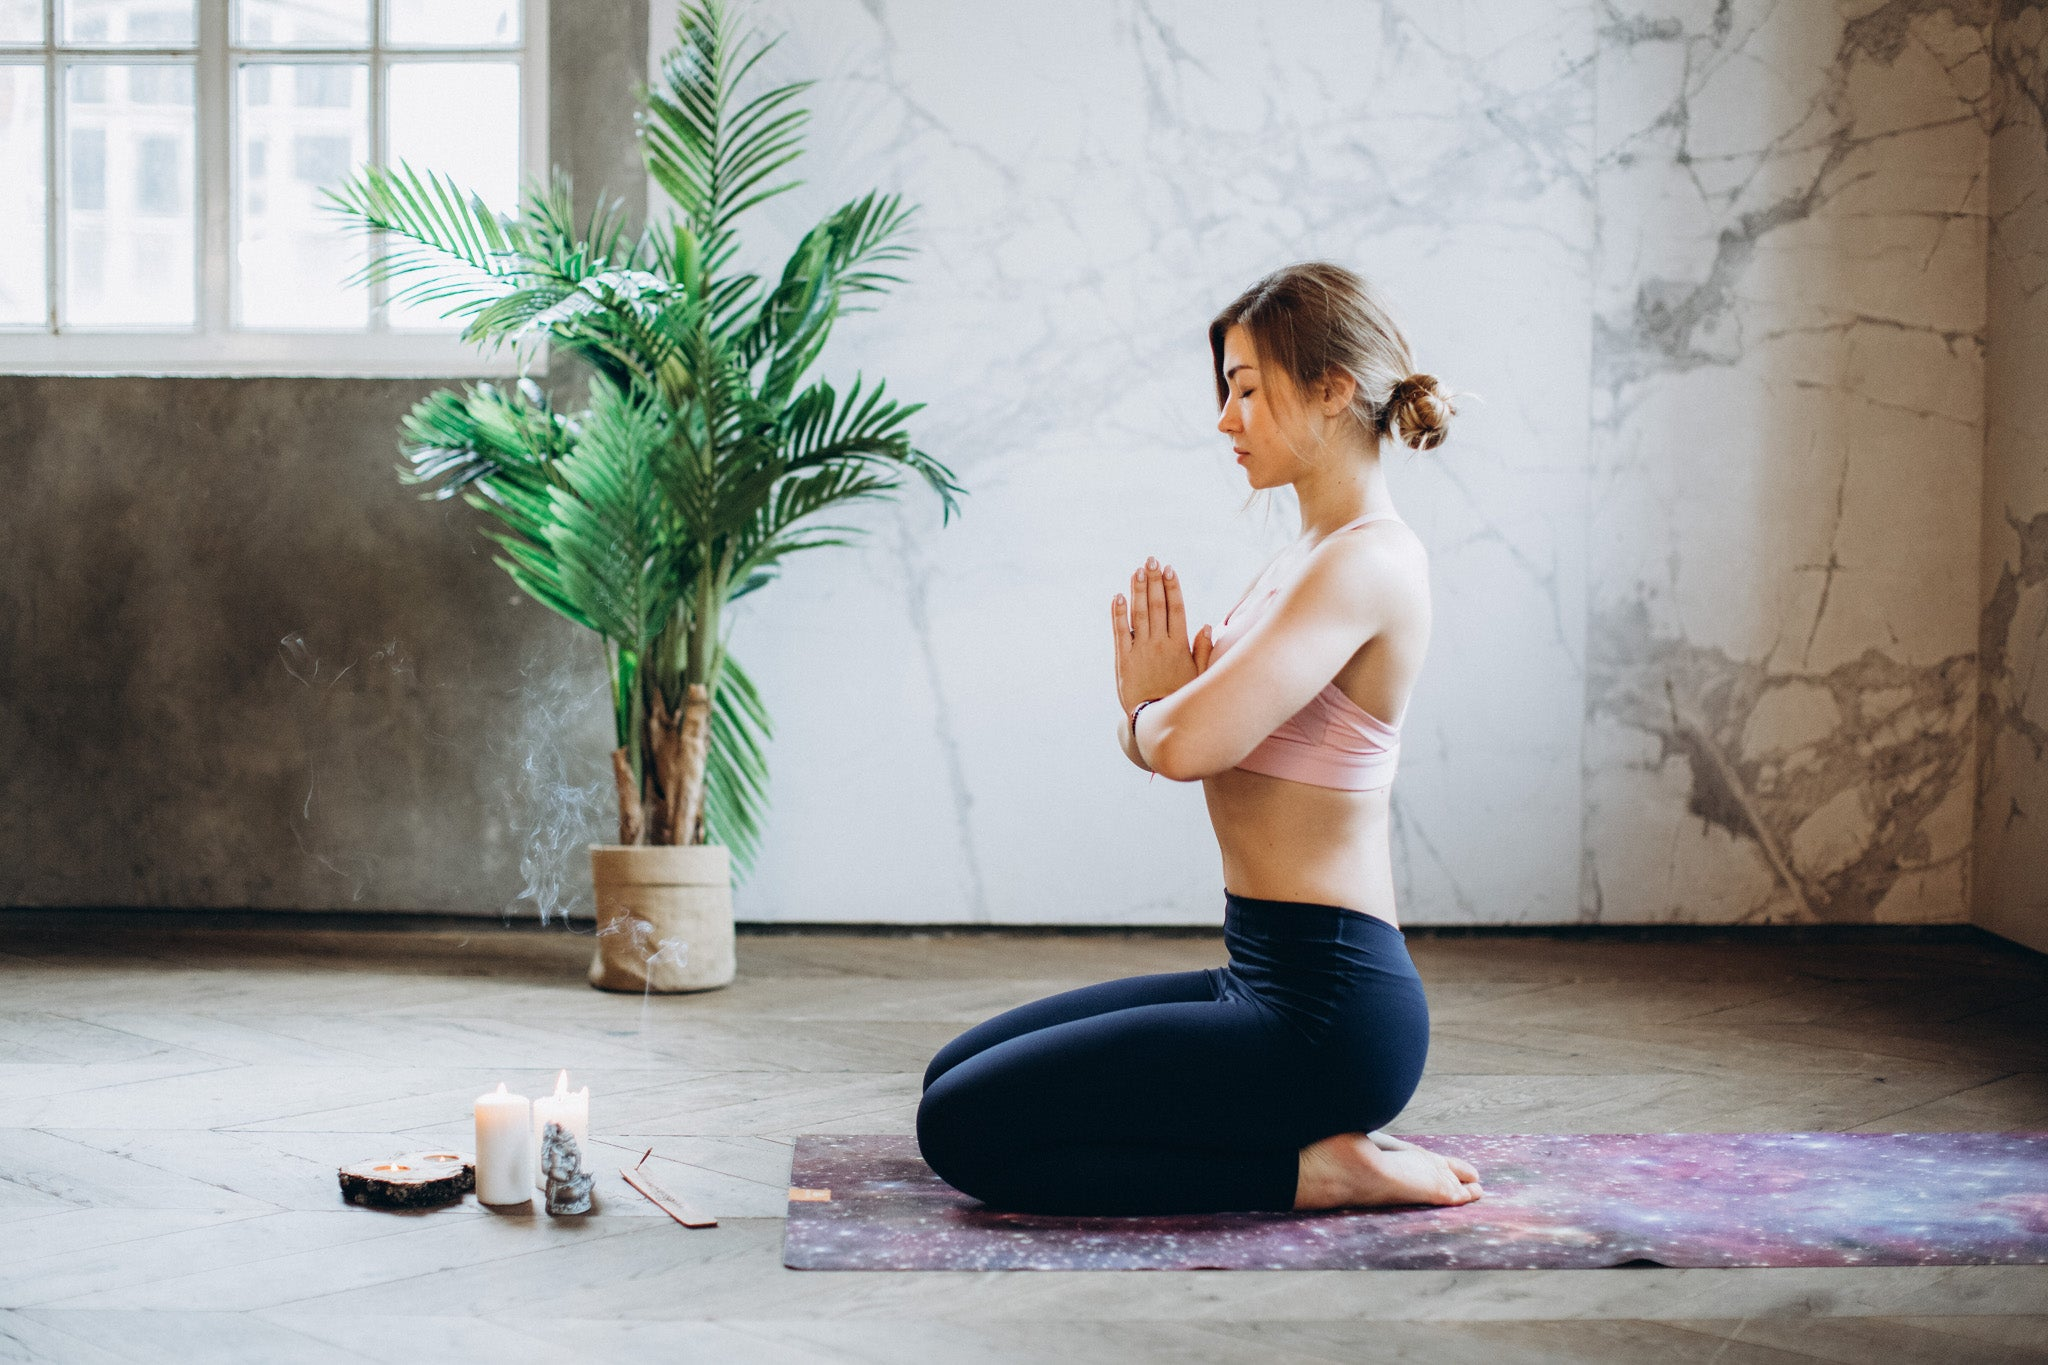 5 Tips for Beginning Your Meditation Practice